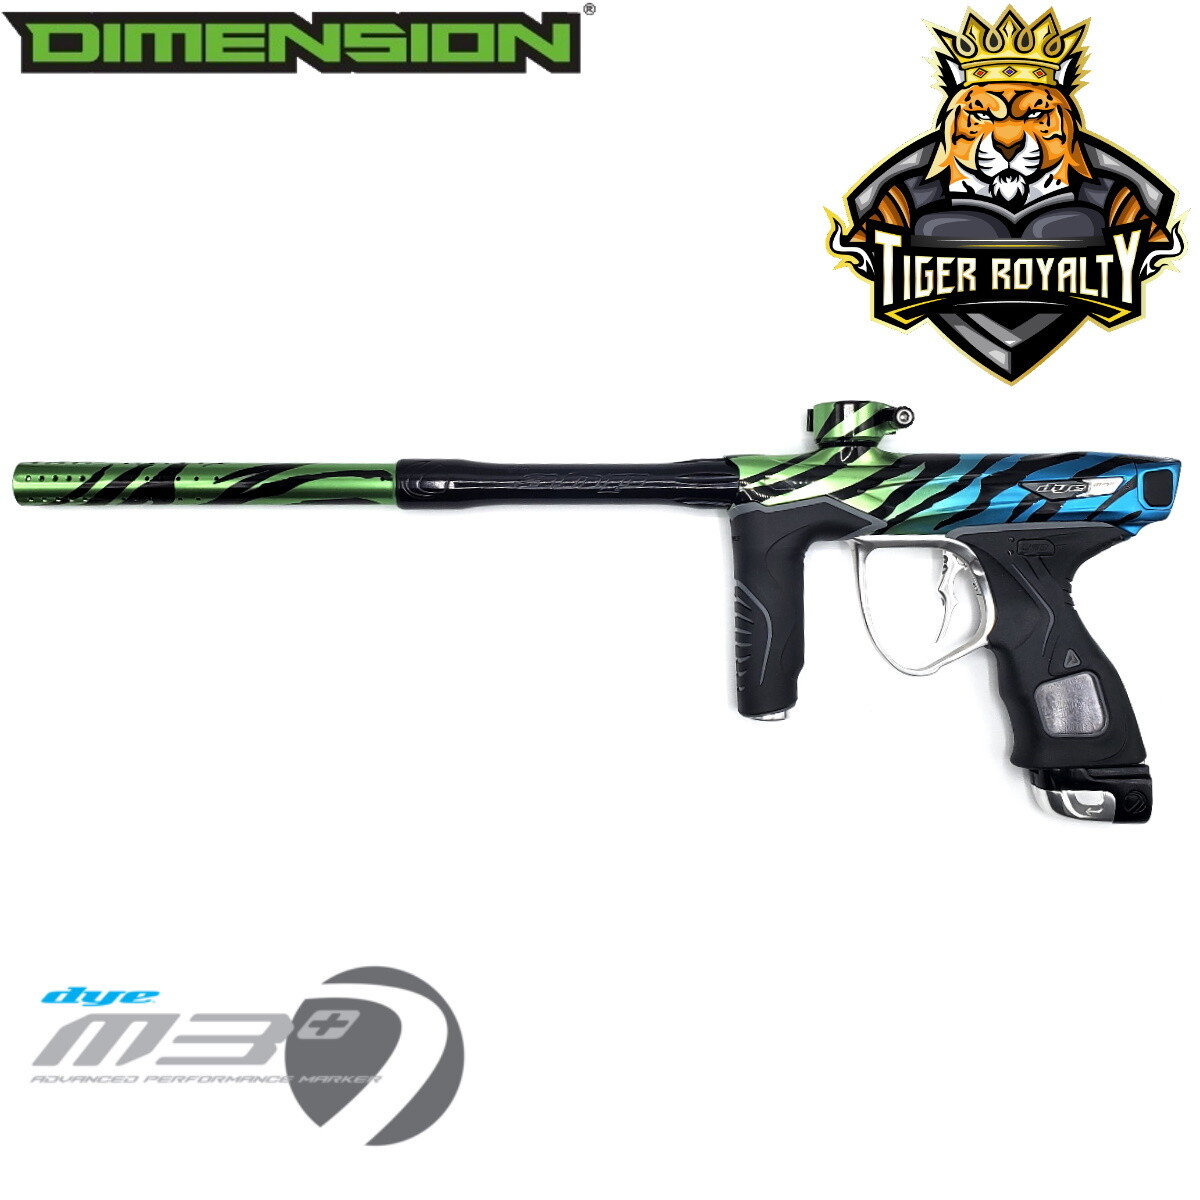 Dye M3+ - Dimension Limited Edition 1 of 1 / Tiger Royalty - Monster